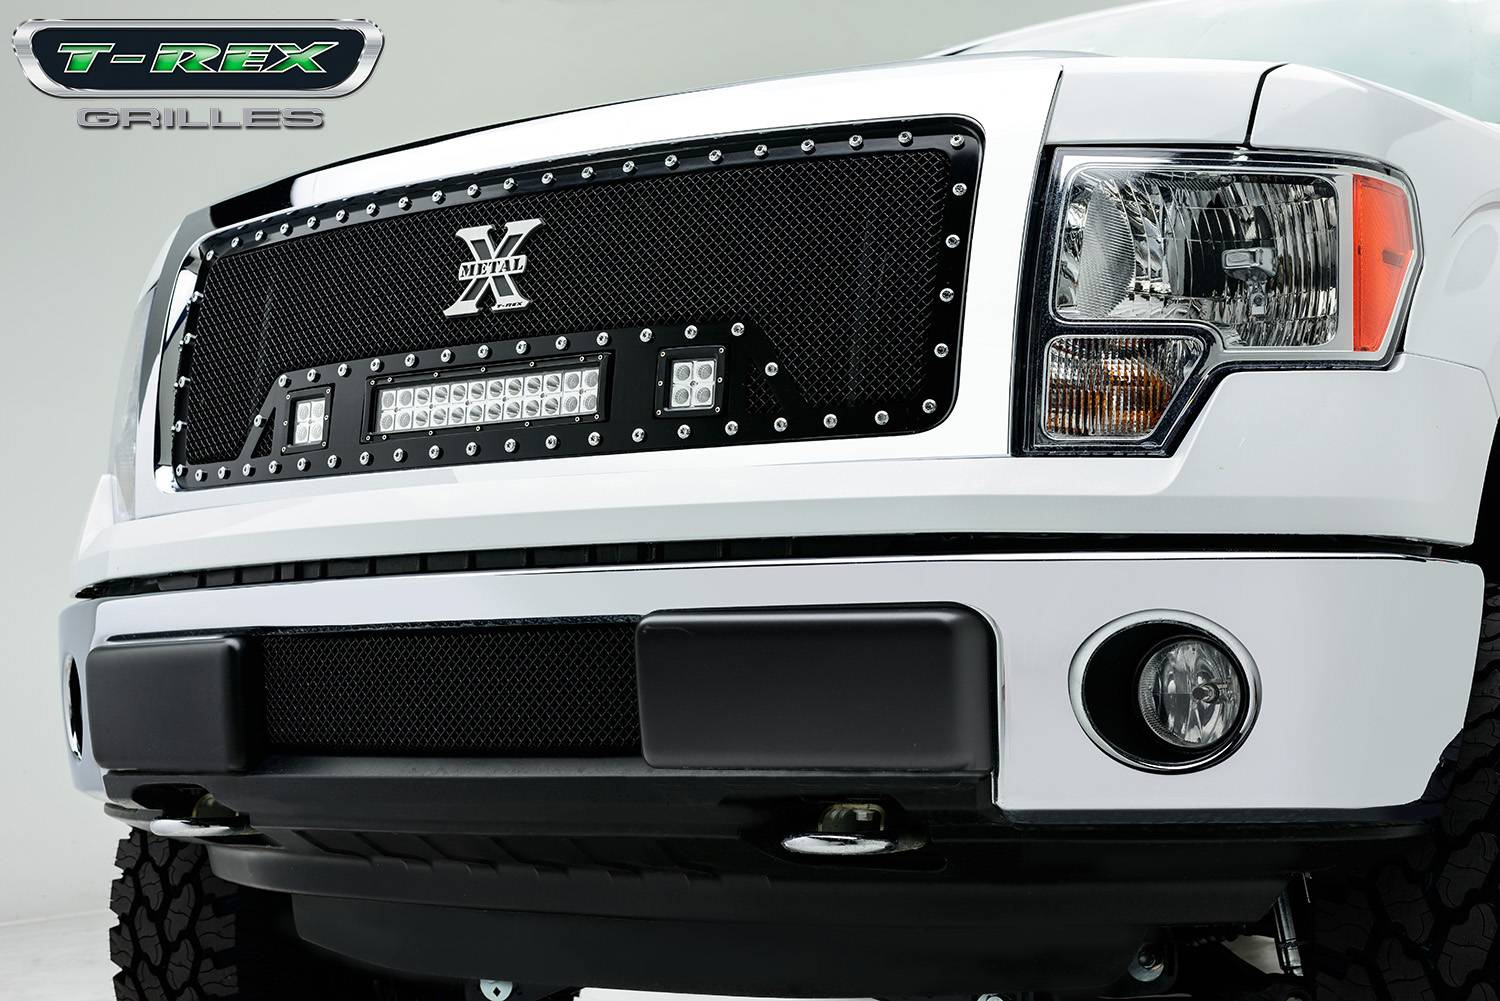 "T-REX GRILLES - 2013-2014 F-150 Torch Grille, Black, 1 Pc, Insert, Chrome Studs with (2) 3"" LED Cubes and (1) 12"" LEDs - PN #6315721"